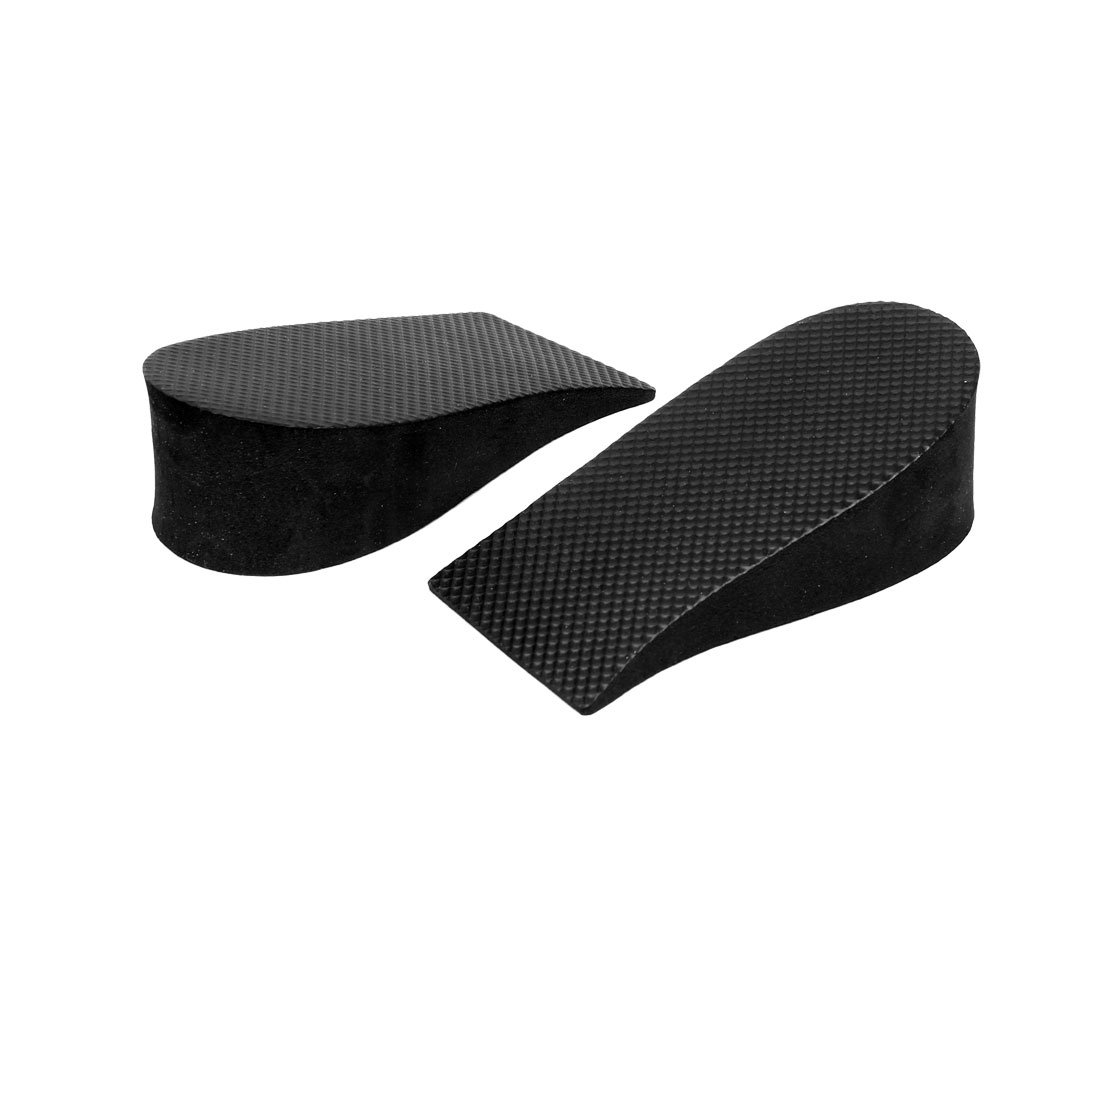 "2016 Hot Style2 Pcs 1.5"" Height Increase Heel Lifts Foam Pads Insoles Black"